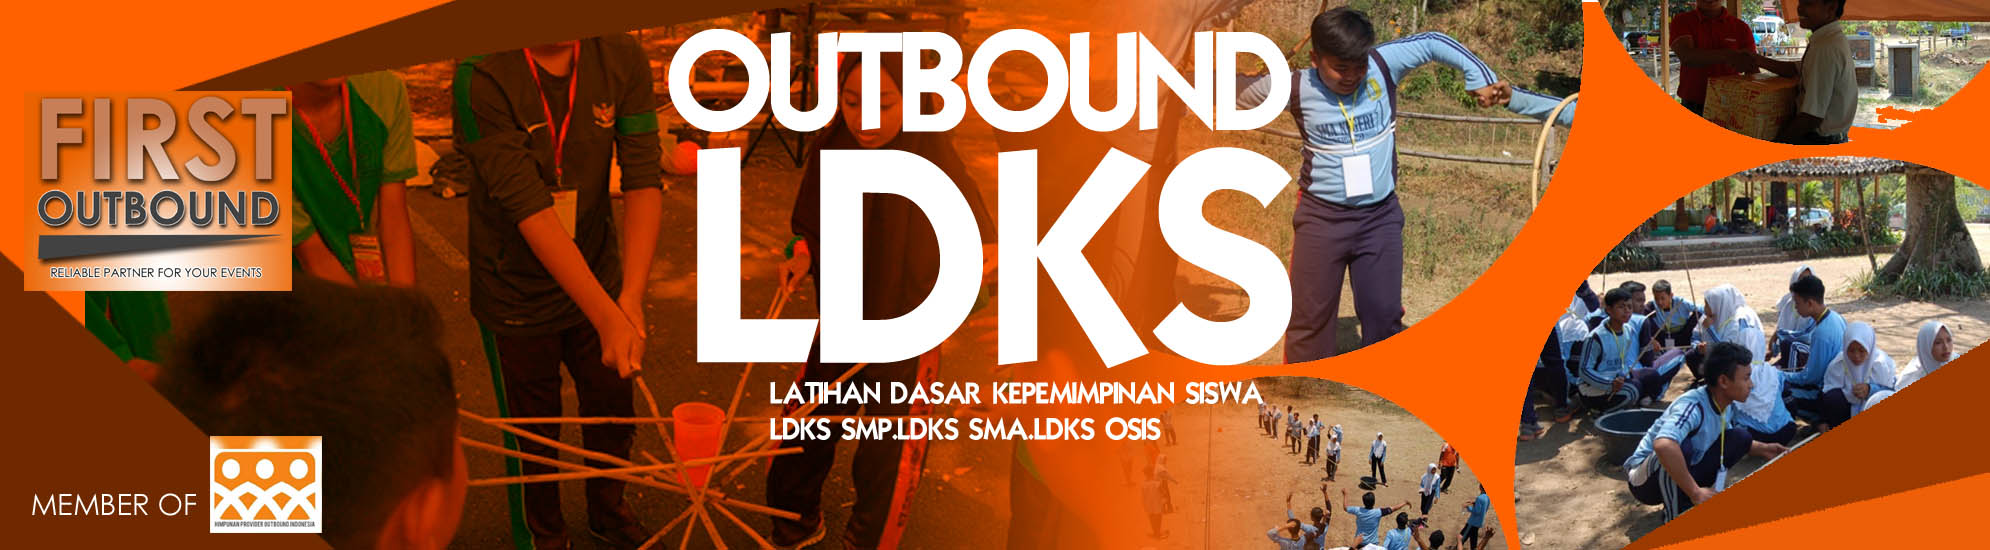 Outbound LDKS